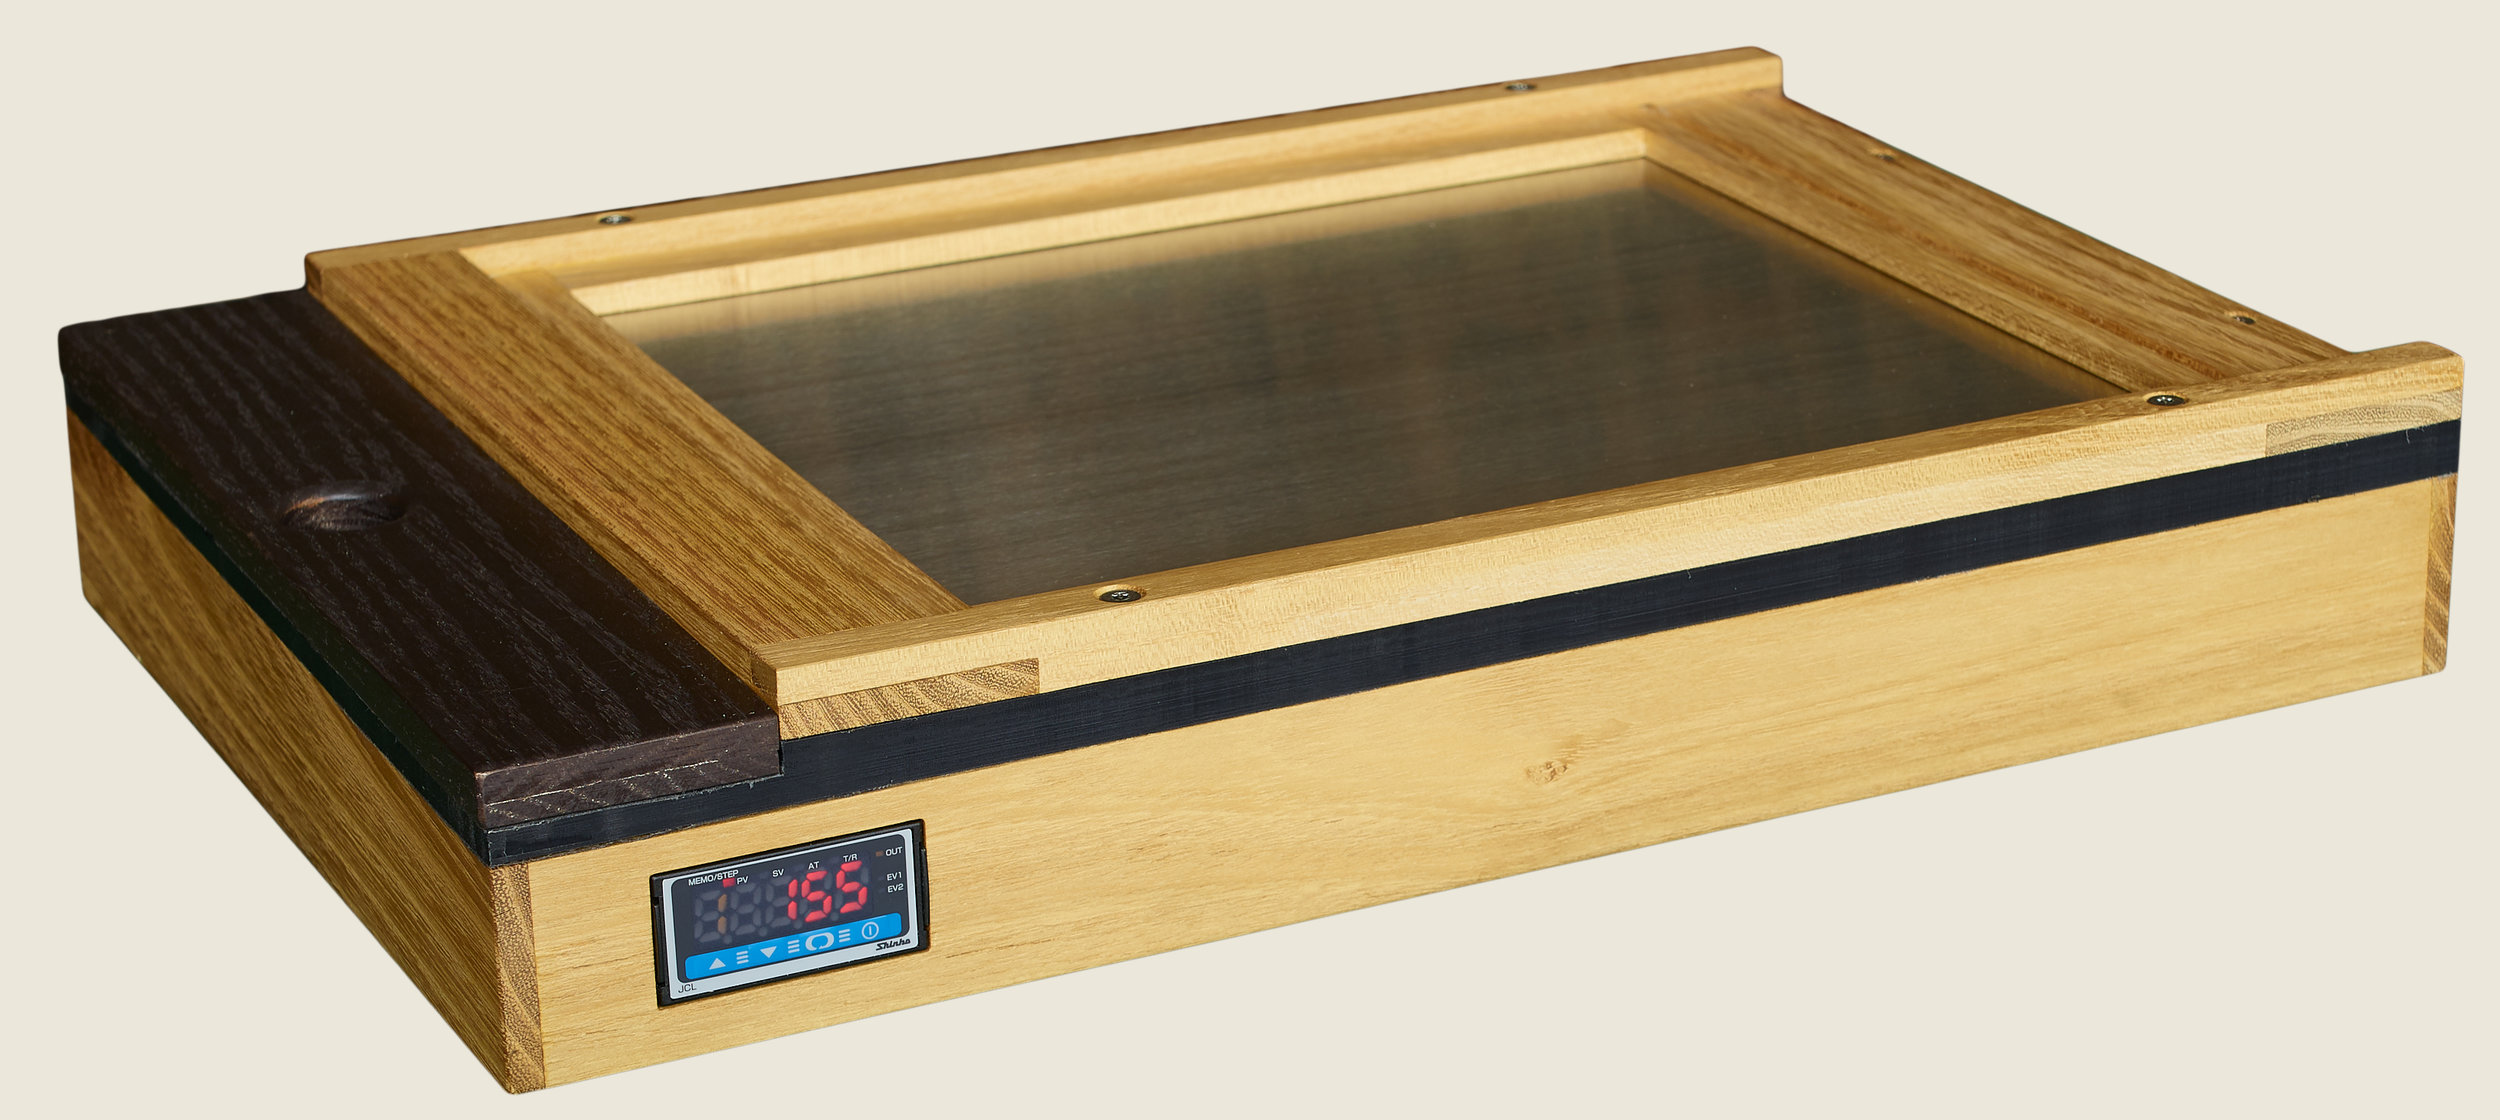 - At left is an 8 x10 model for use with a standard Lisco Fidelity film holder.In Teak with a satin oil finish.